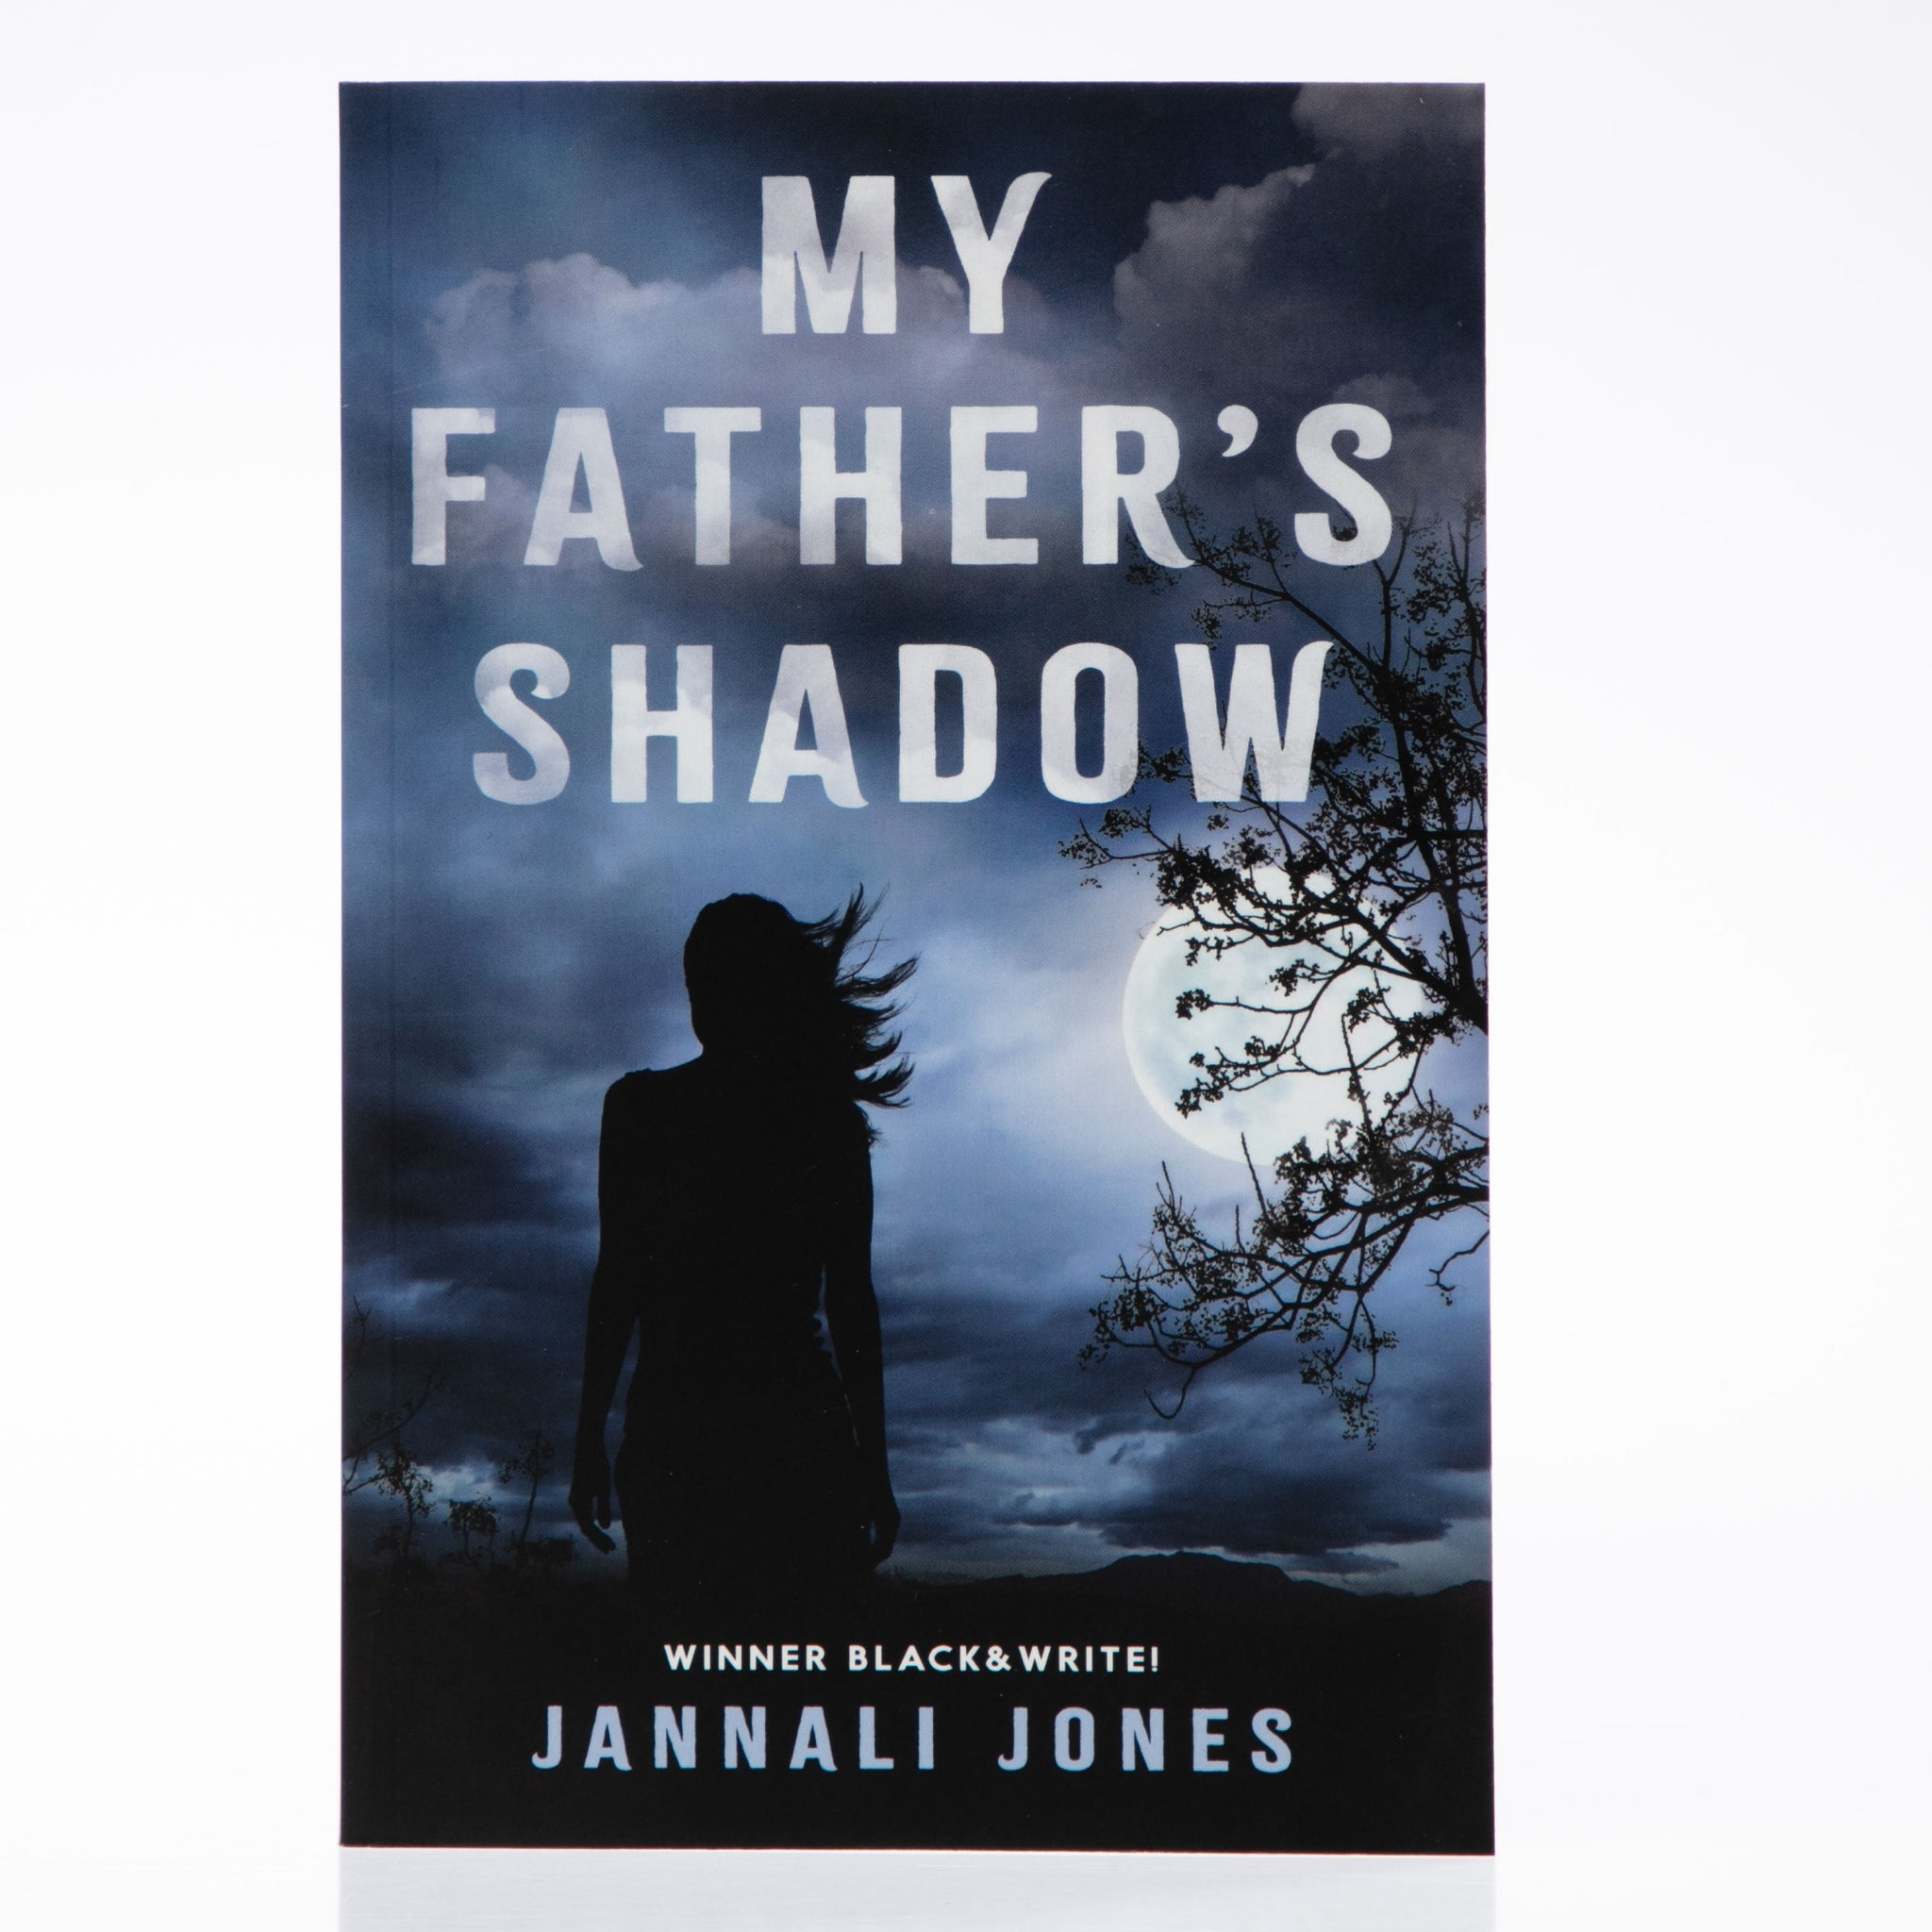 My Father's Shadow